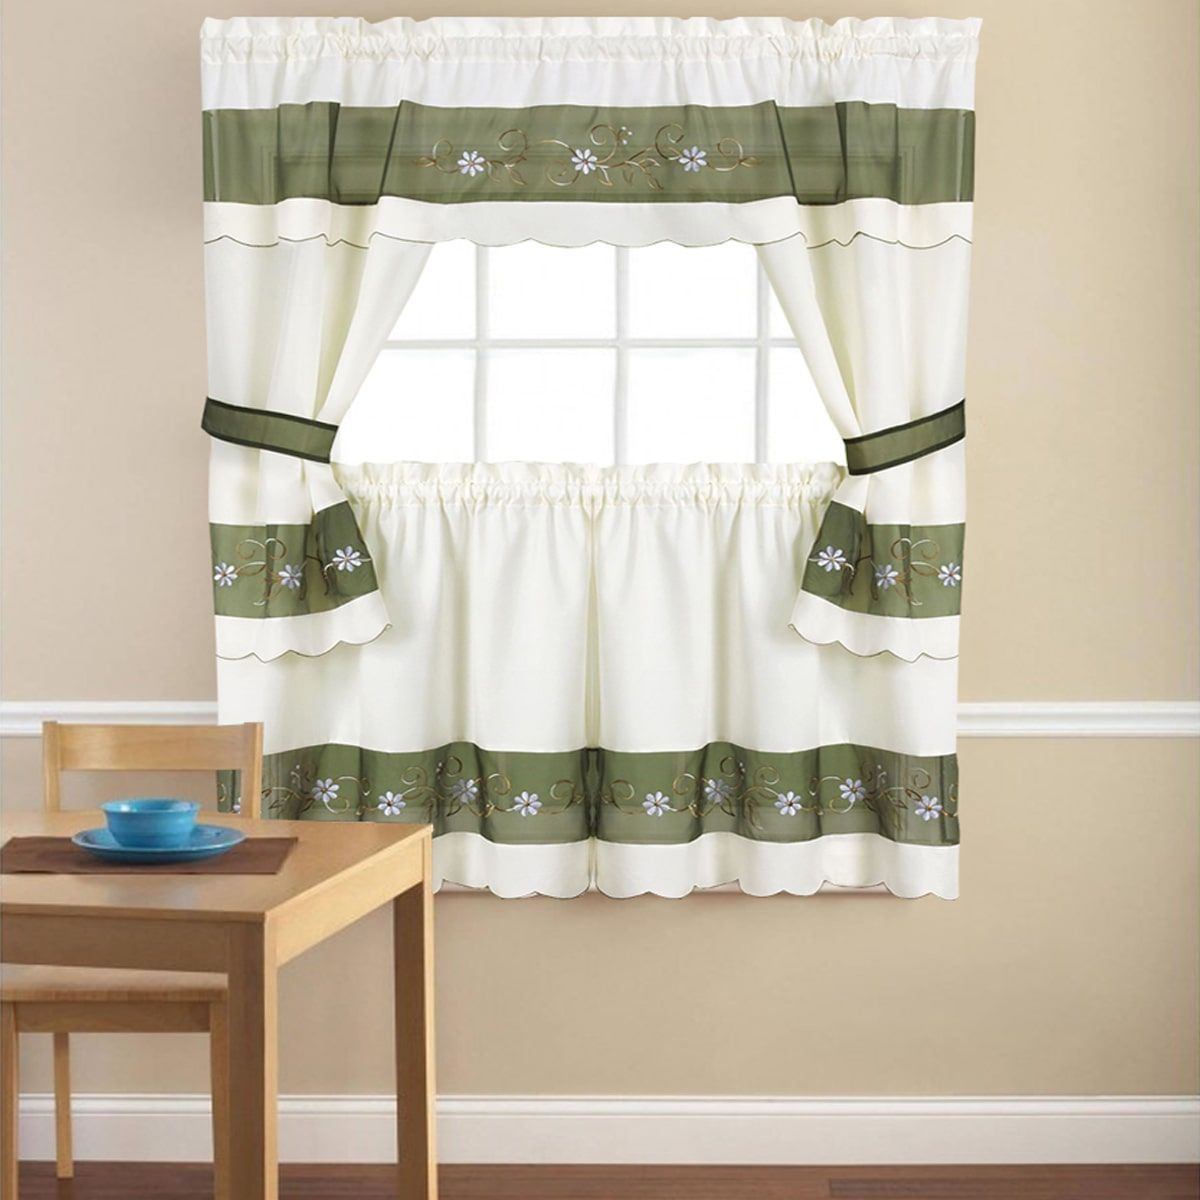 Embroidered Floral 5 Piece Kitchen Curtain Set 58 X24